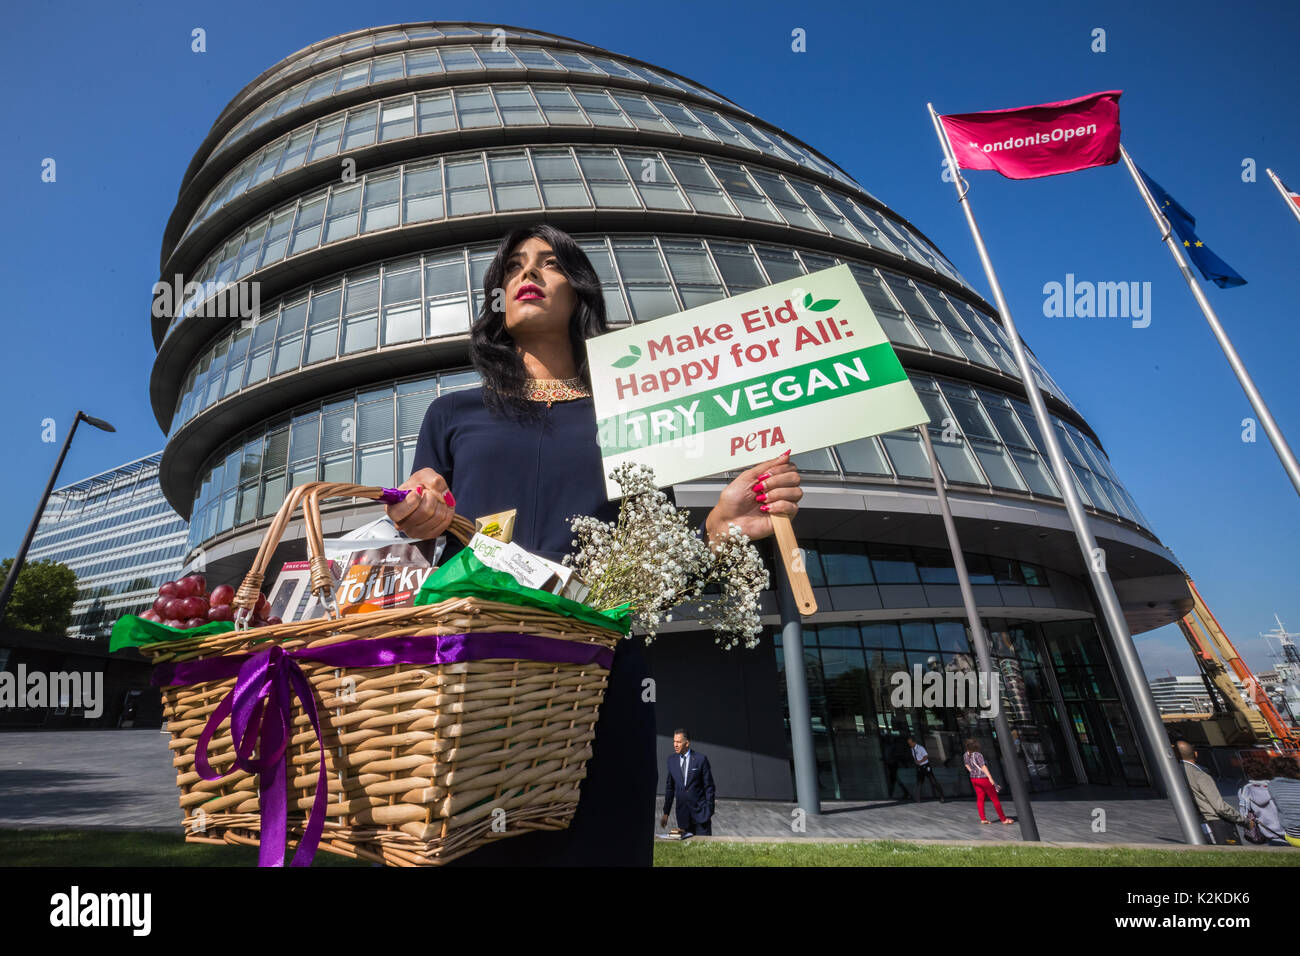 London, UK. 31st August, 2017. PETA protest outside City Hall. Asifa Lahore, Britain's first out Muslim drag queen, poses for photos with a hamper of vegan goodies from PETA before delivering them to London Mayor Sadiq Khan's office for Eid al-Adha holy celebration. Credit: Guy Corbishley/Alamy Live News - Stock Image